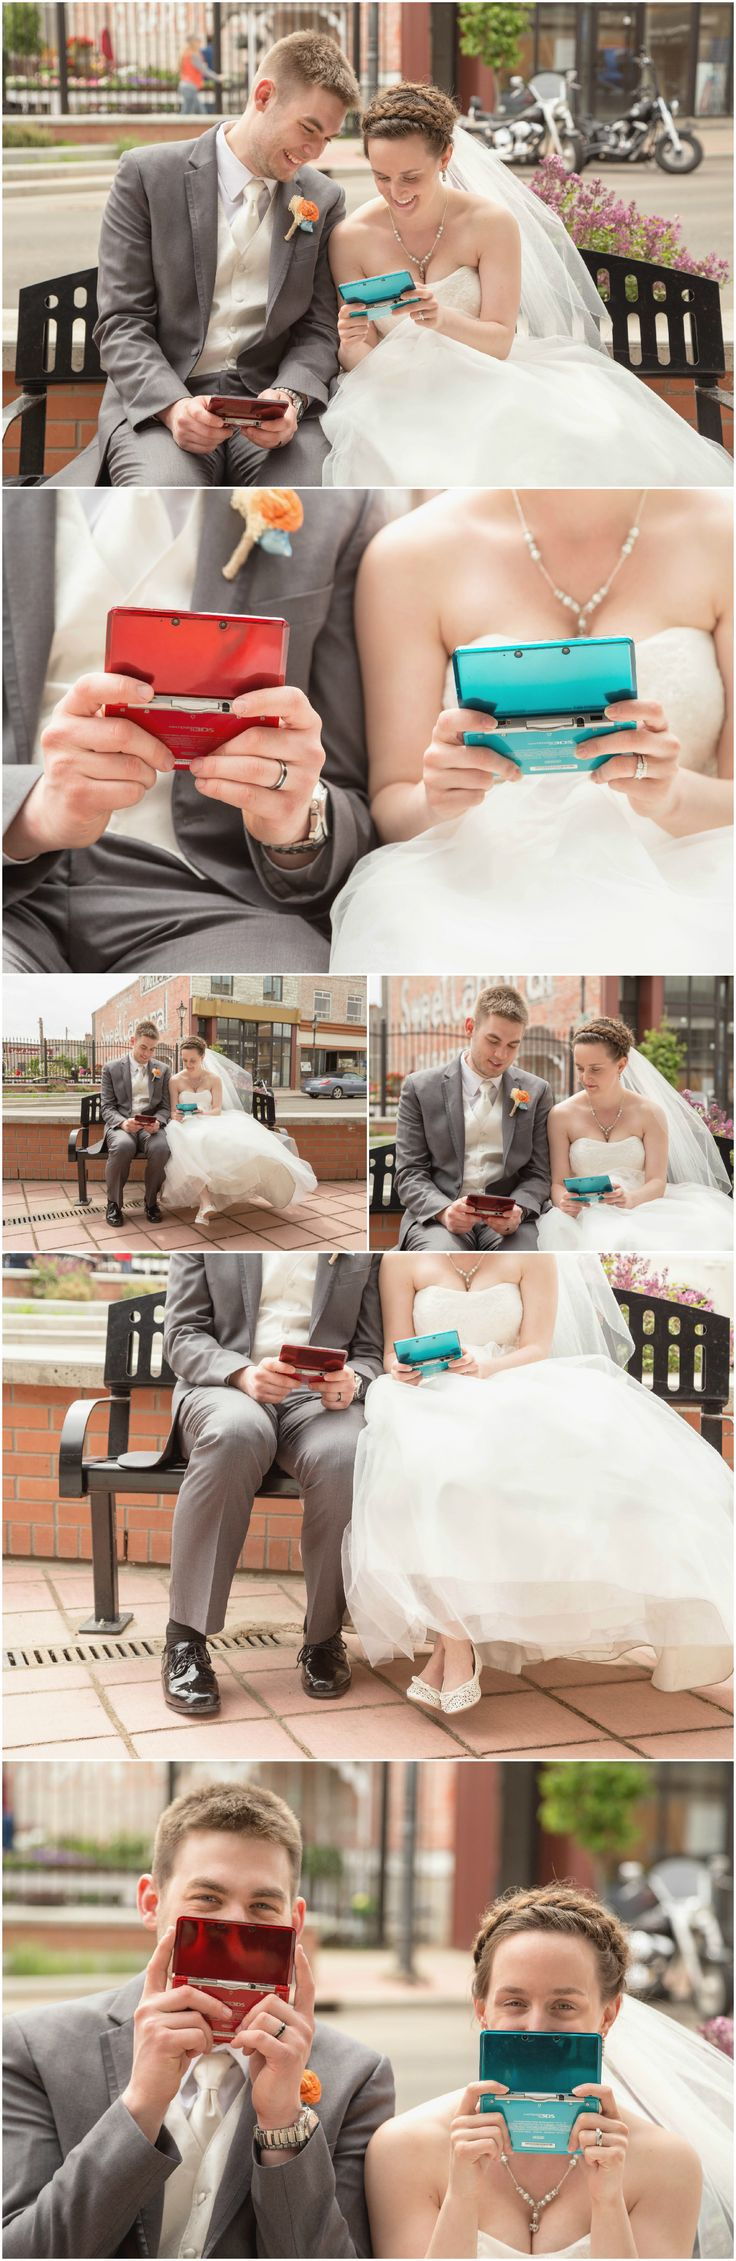 Jayda + Cole's Video Game Wedding   Woods Photography. Geek wedding photo idea of a bride and groom playing their first game as husband and wife with their Nintendo DS. Taken Downtown in Medicine Hat, AB (CANADA). #NintendoDS #GeekWedding #Geek